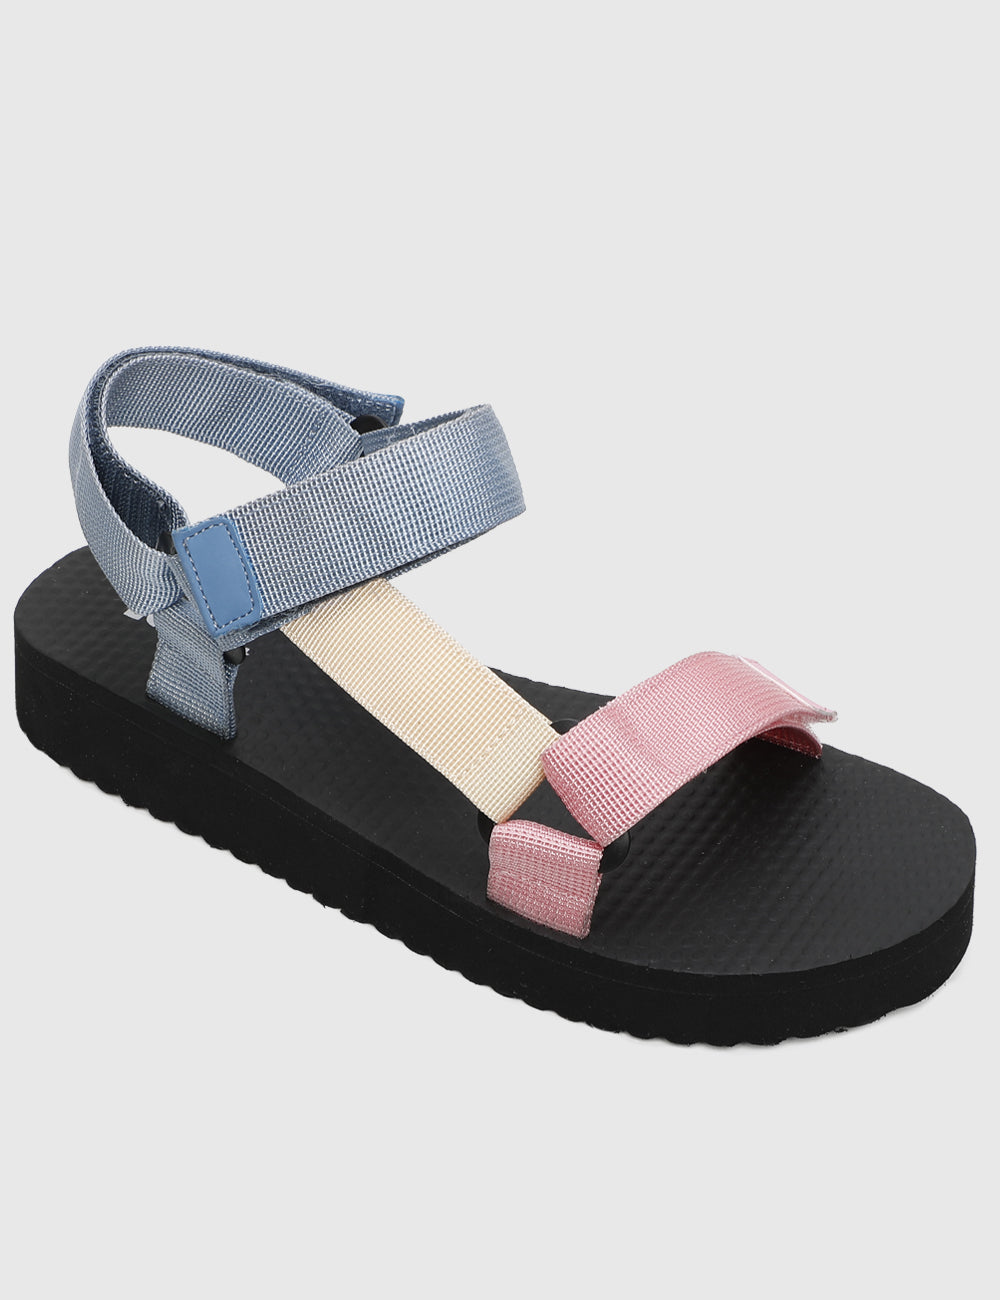 Casual Chic Strap Sandals (Pink)